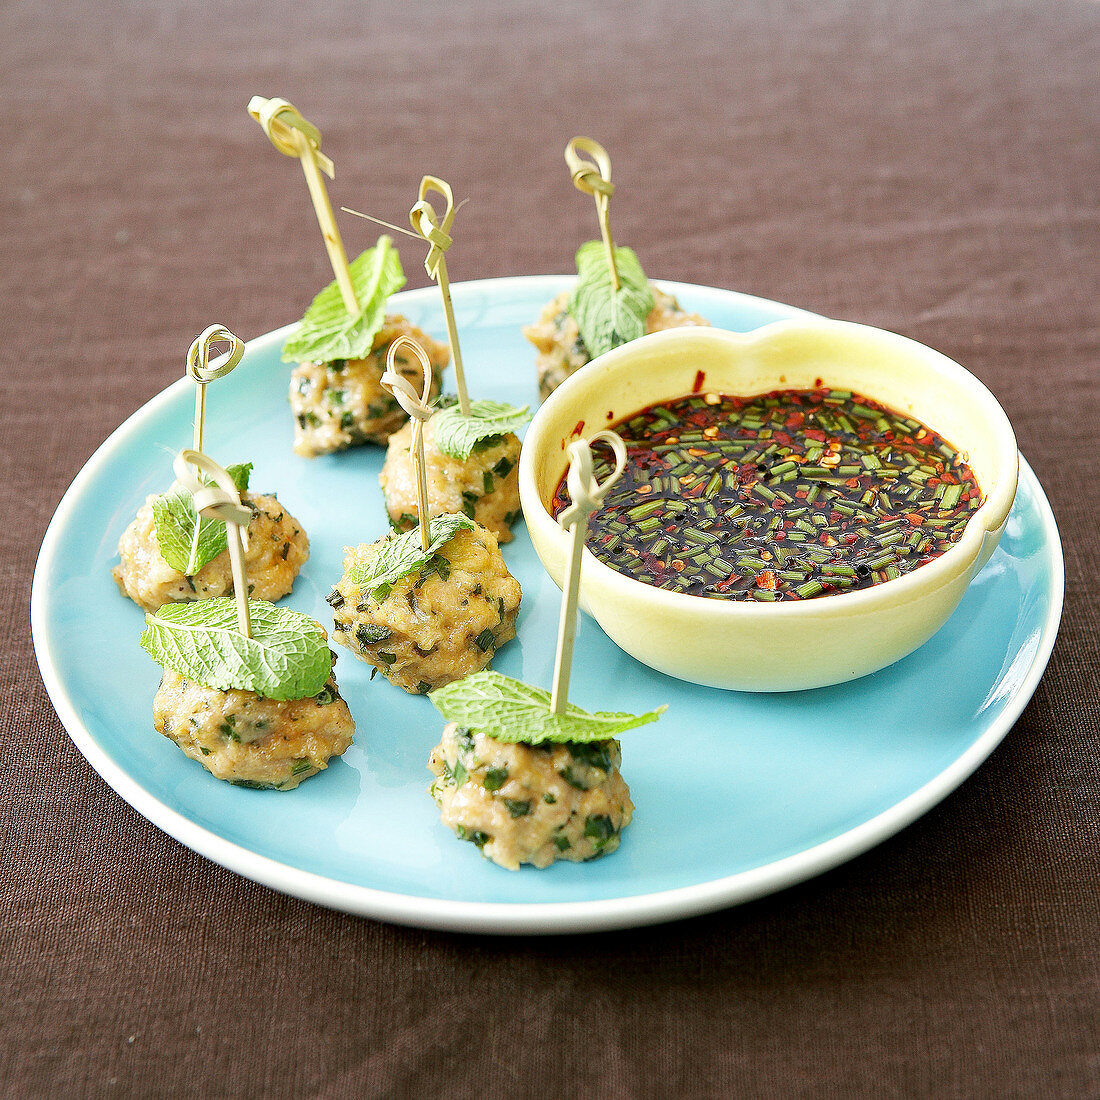 Minty chicken meat balls on sticks,chili pepper and chive suace